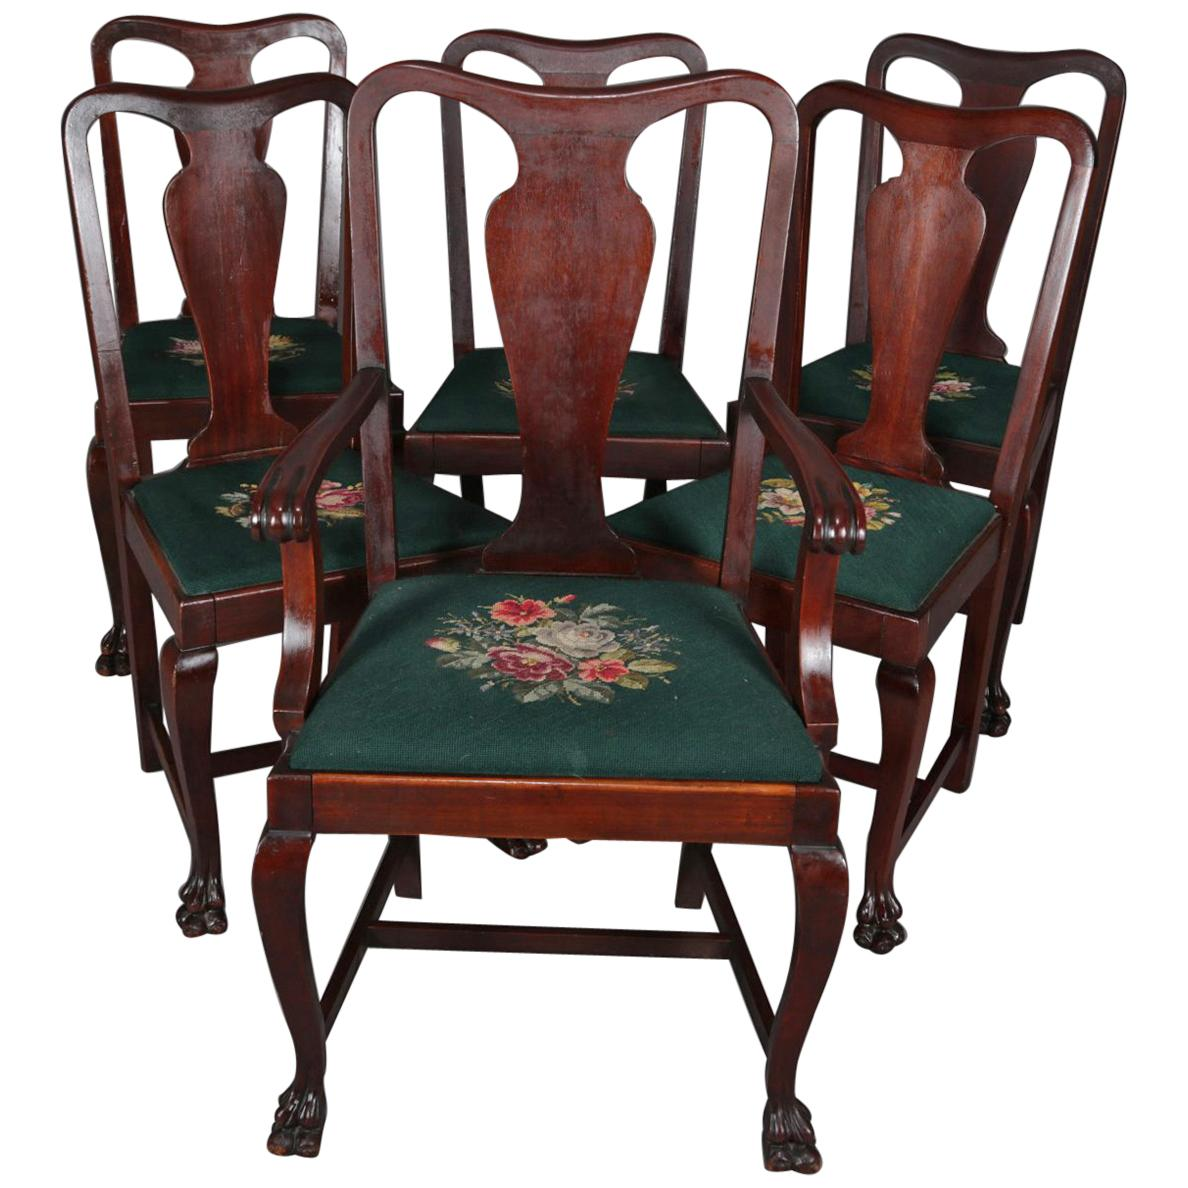 Chippendale Dining Room Chairs   111 For Sale At 1stdibs